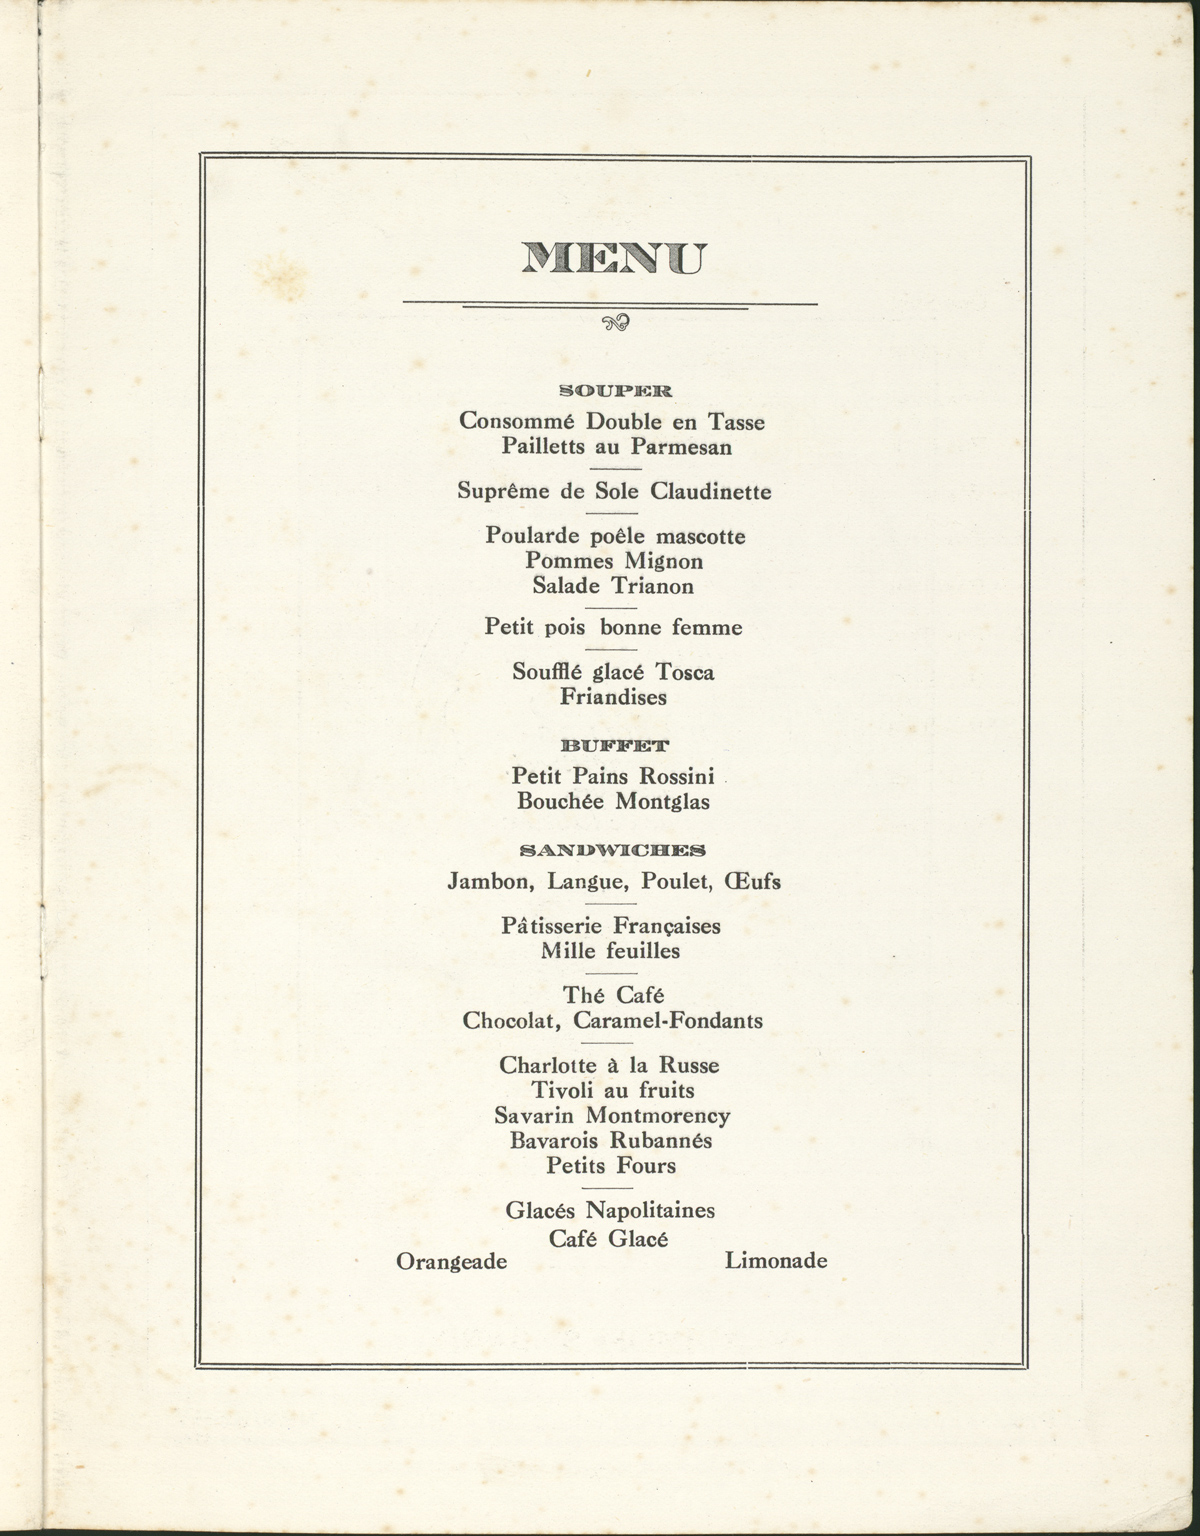 Florence Restaurant Menu for P.E.N. Club dinner held on October 5, 1921.